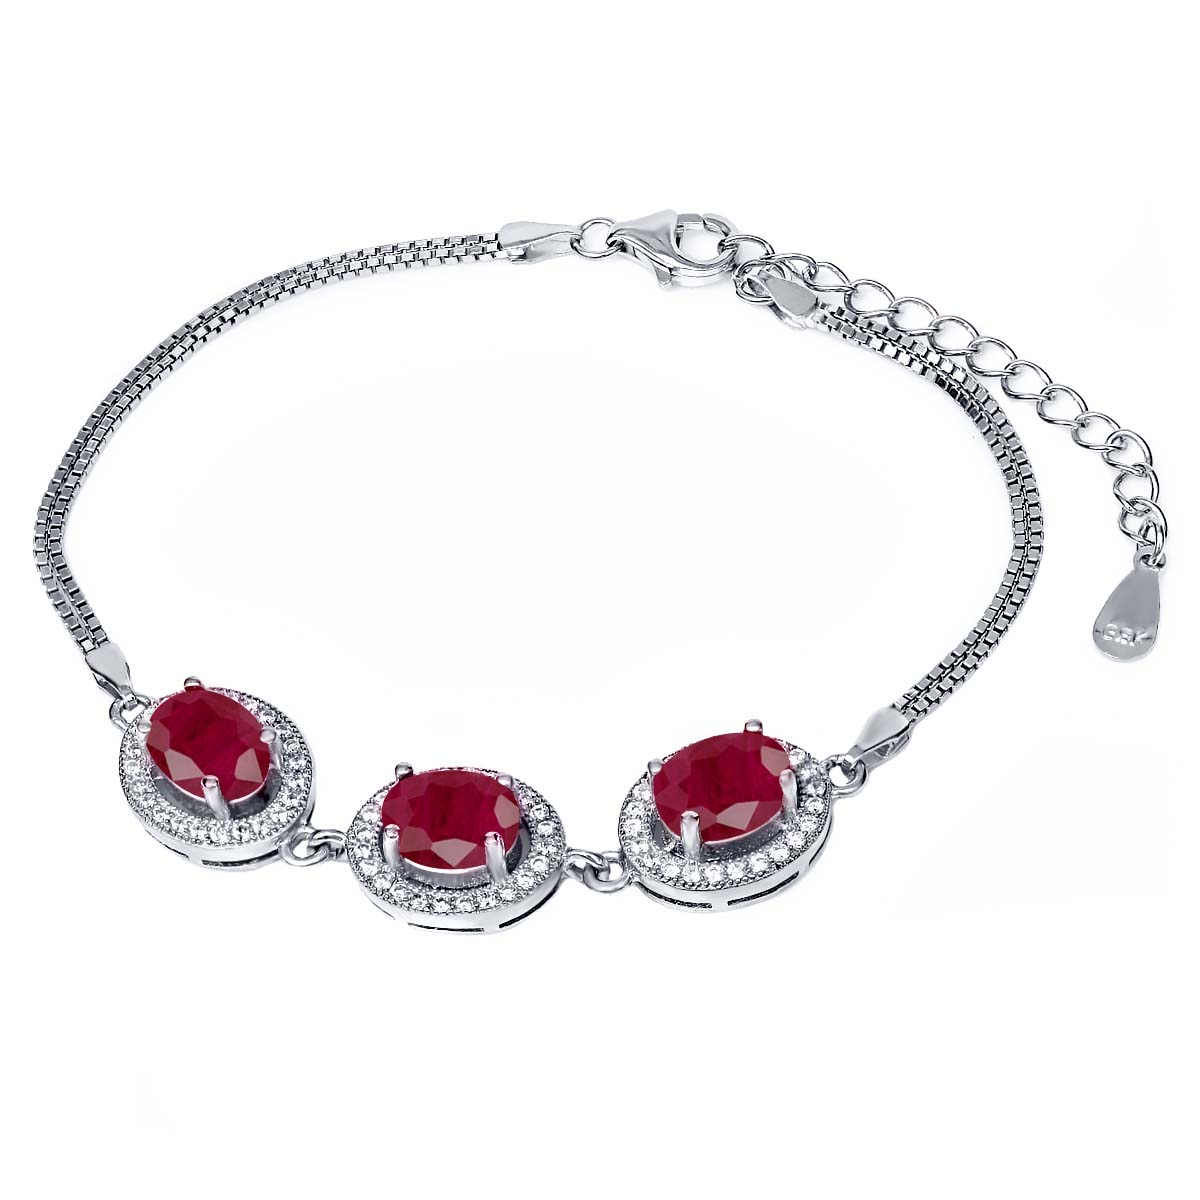 7.16 Ct Oval Red Ruby 925 Sterling Silver Bracelet by